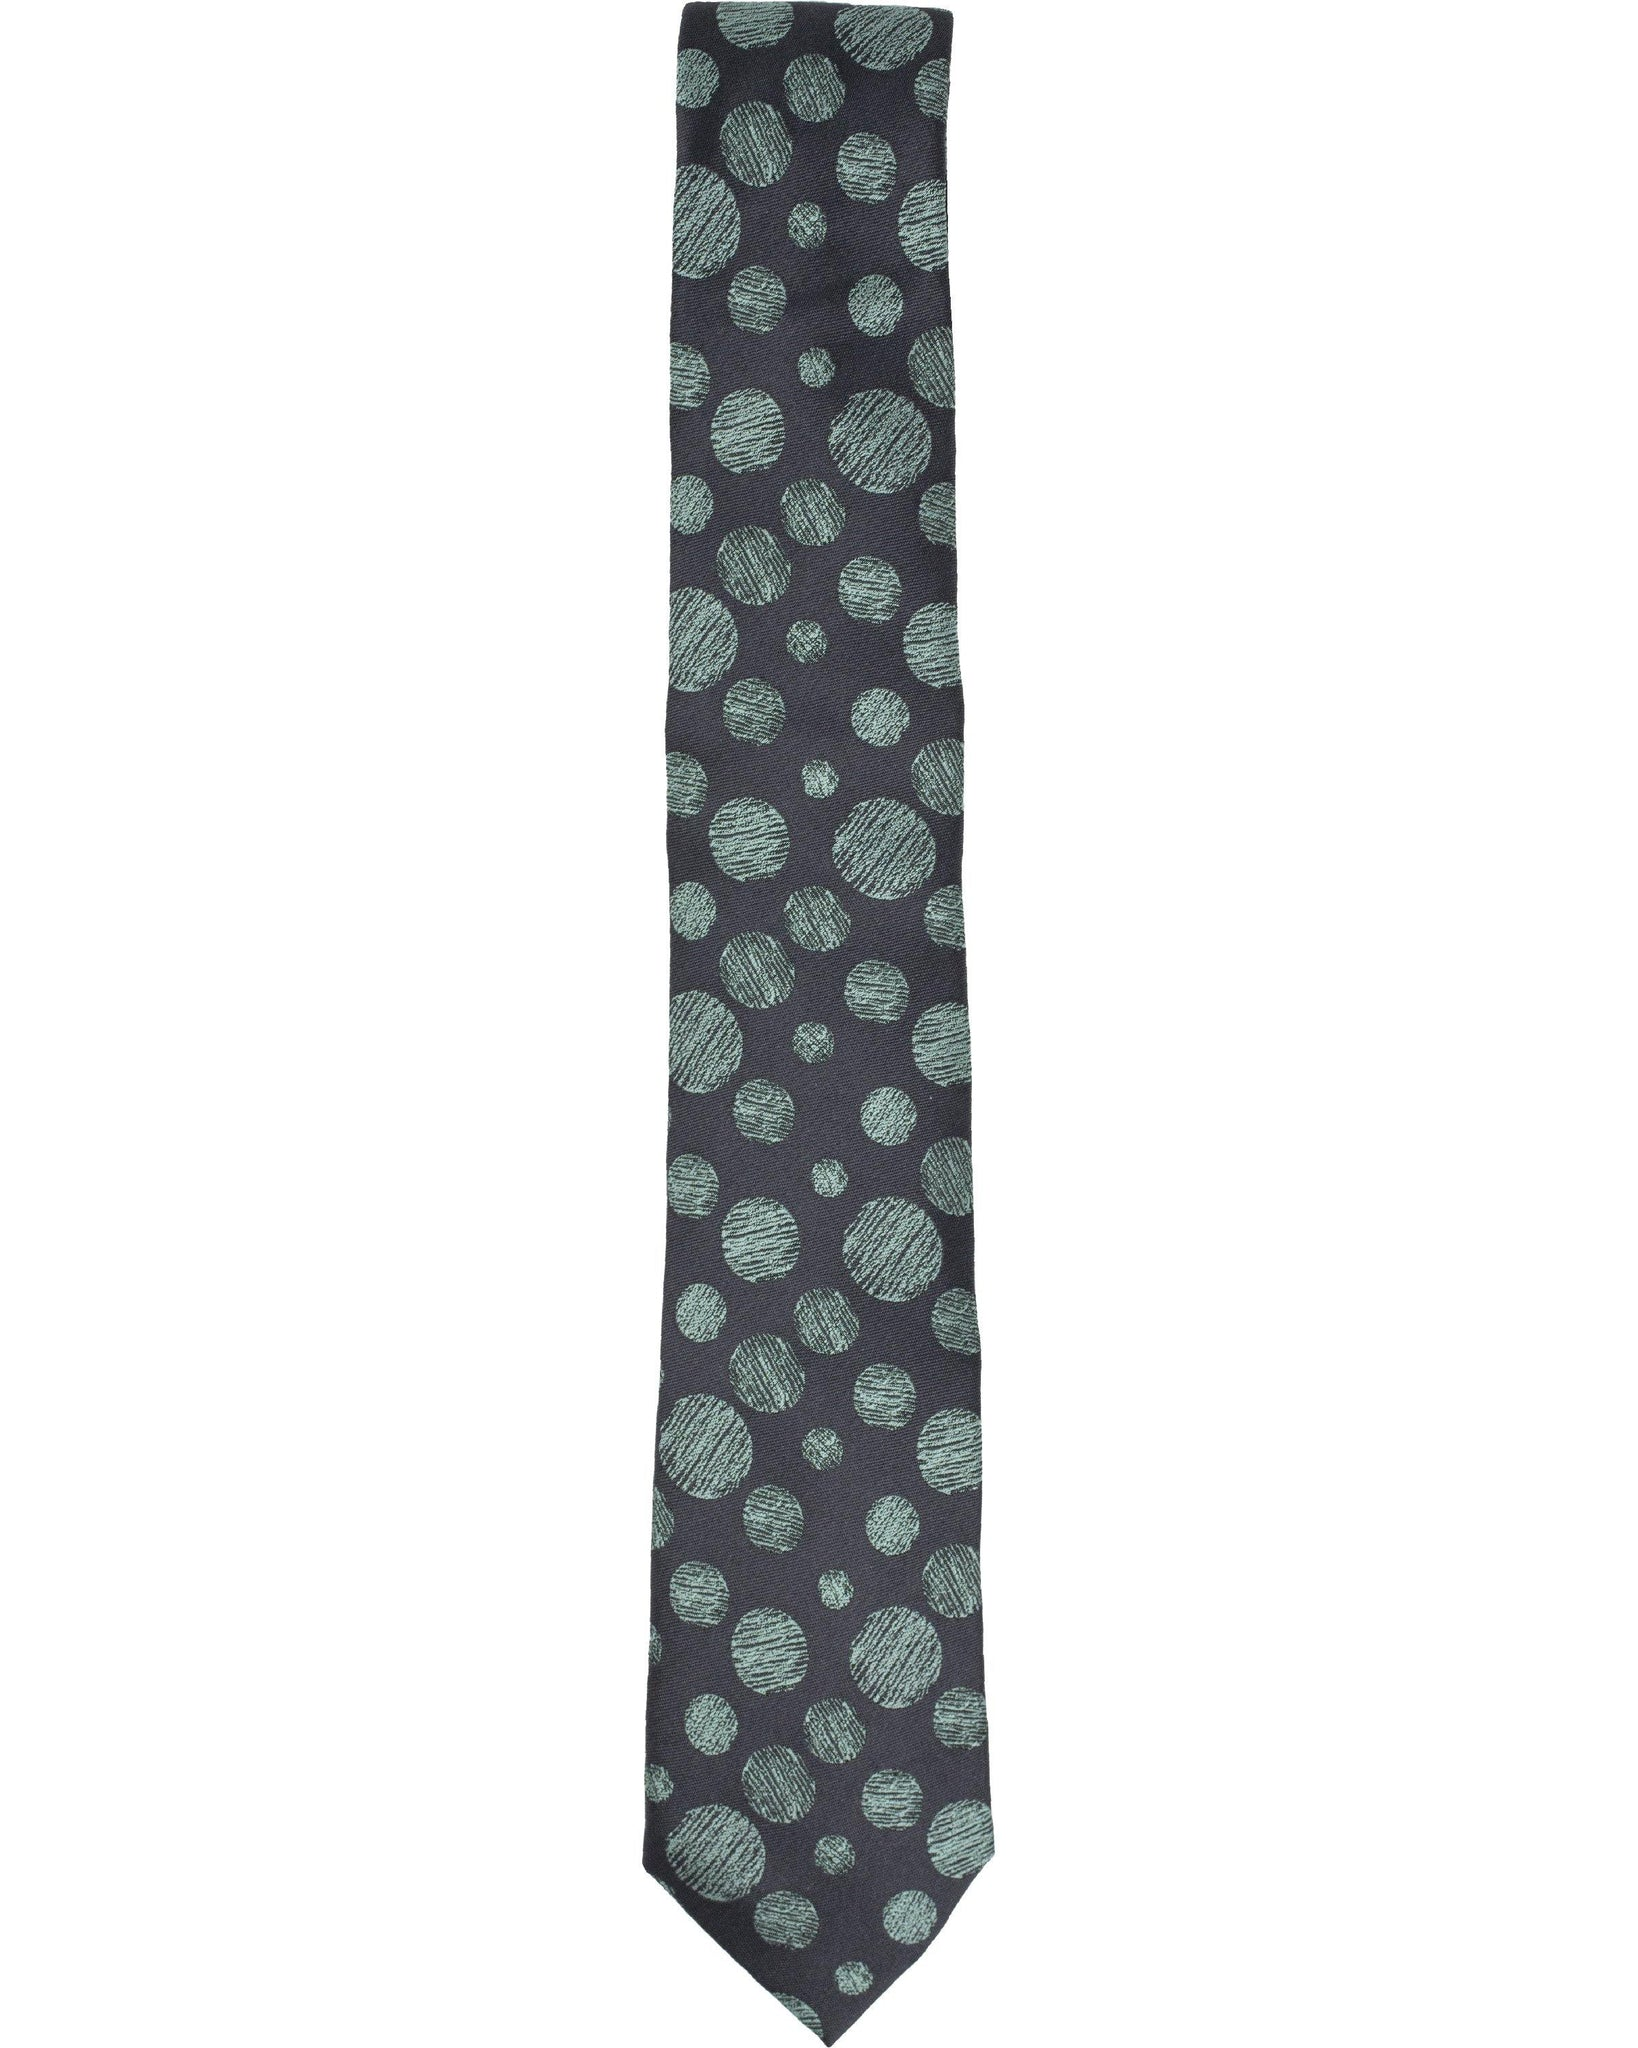 Horace Graphite Tie - Lords Of Harlech